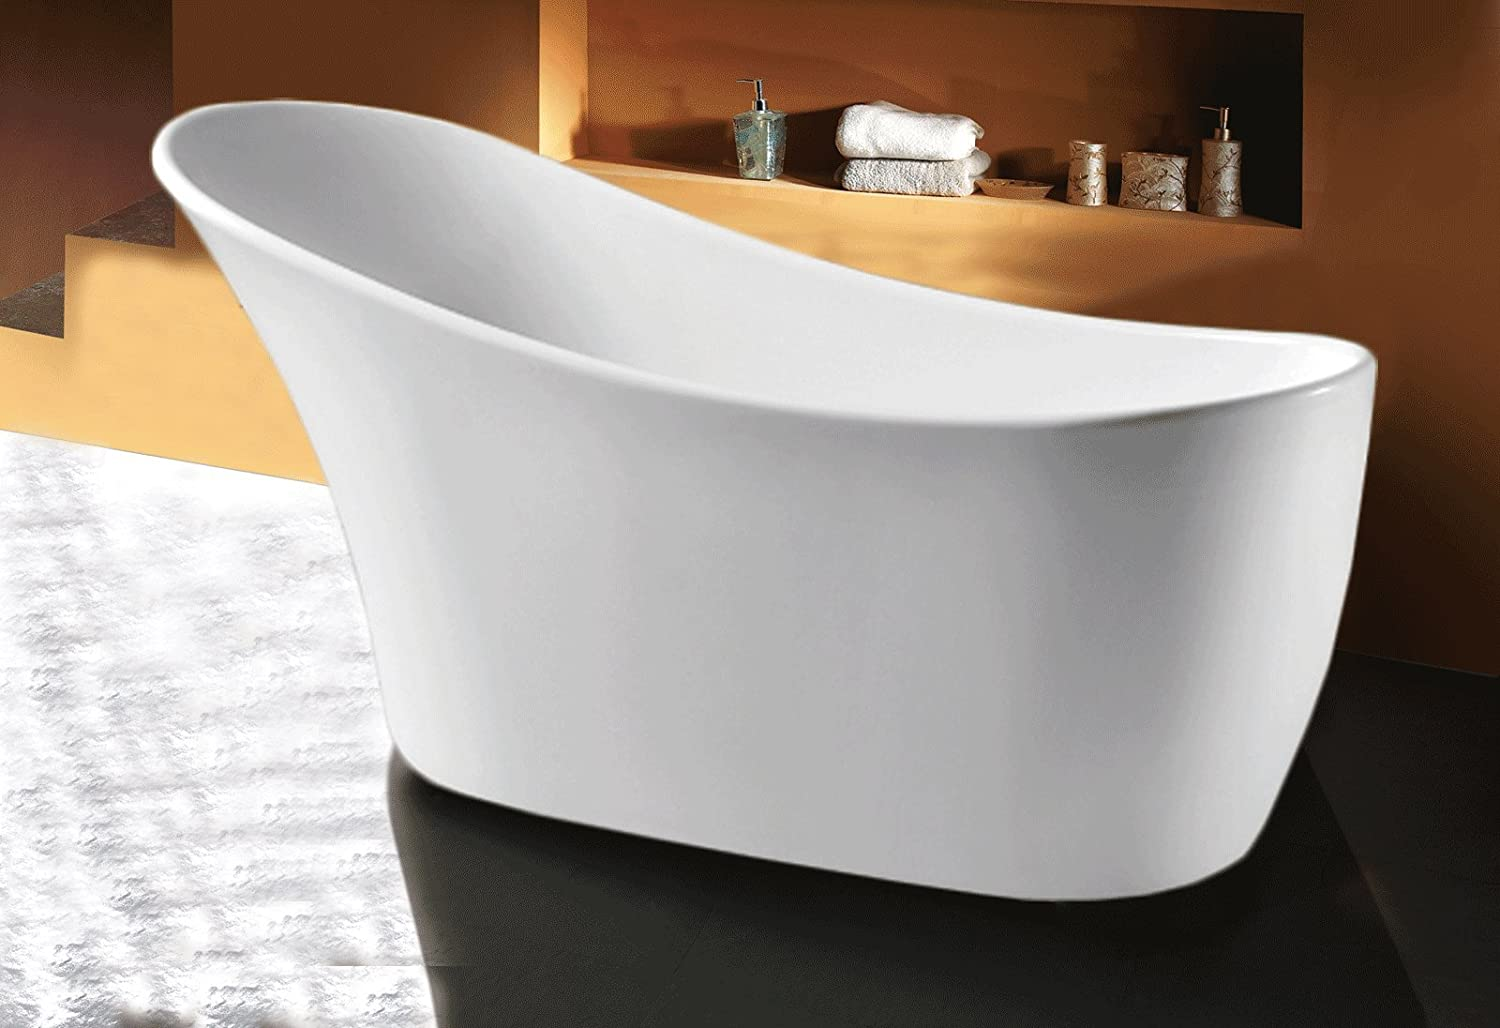 Top 10 best free standing acrylic bathtubs 2016 2017 on for Best acrylic tub